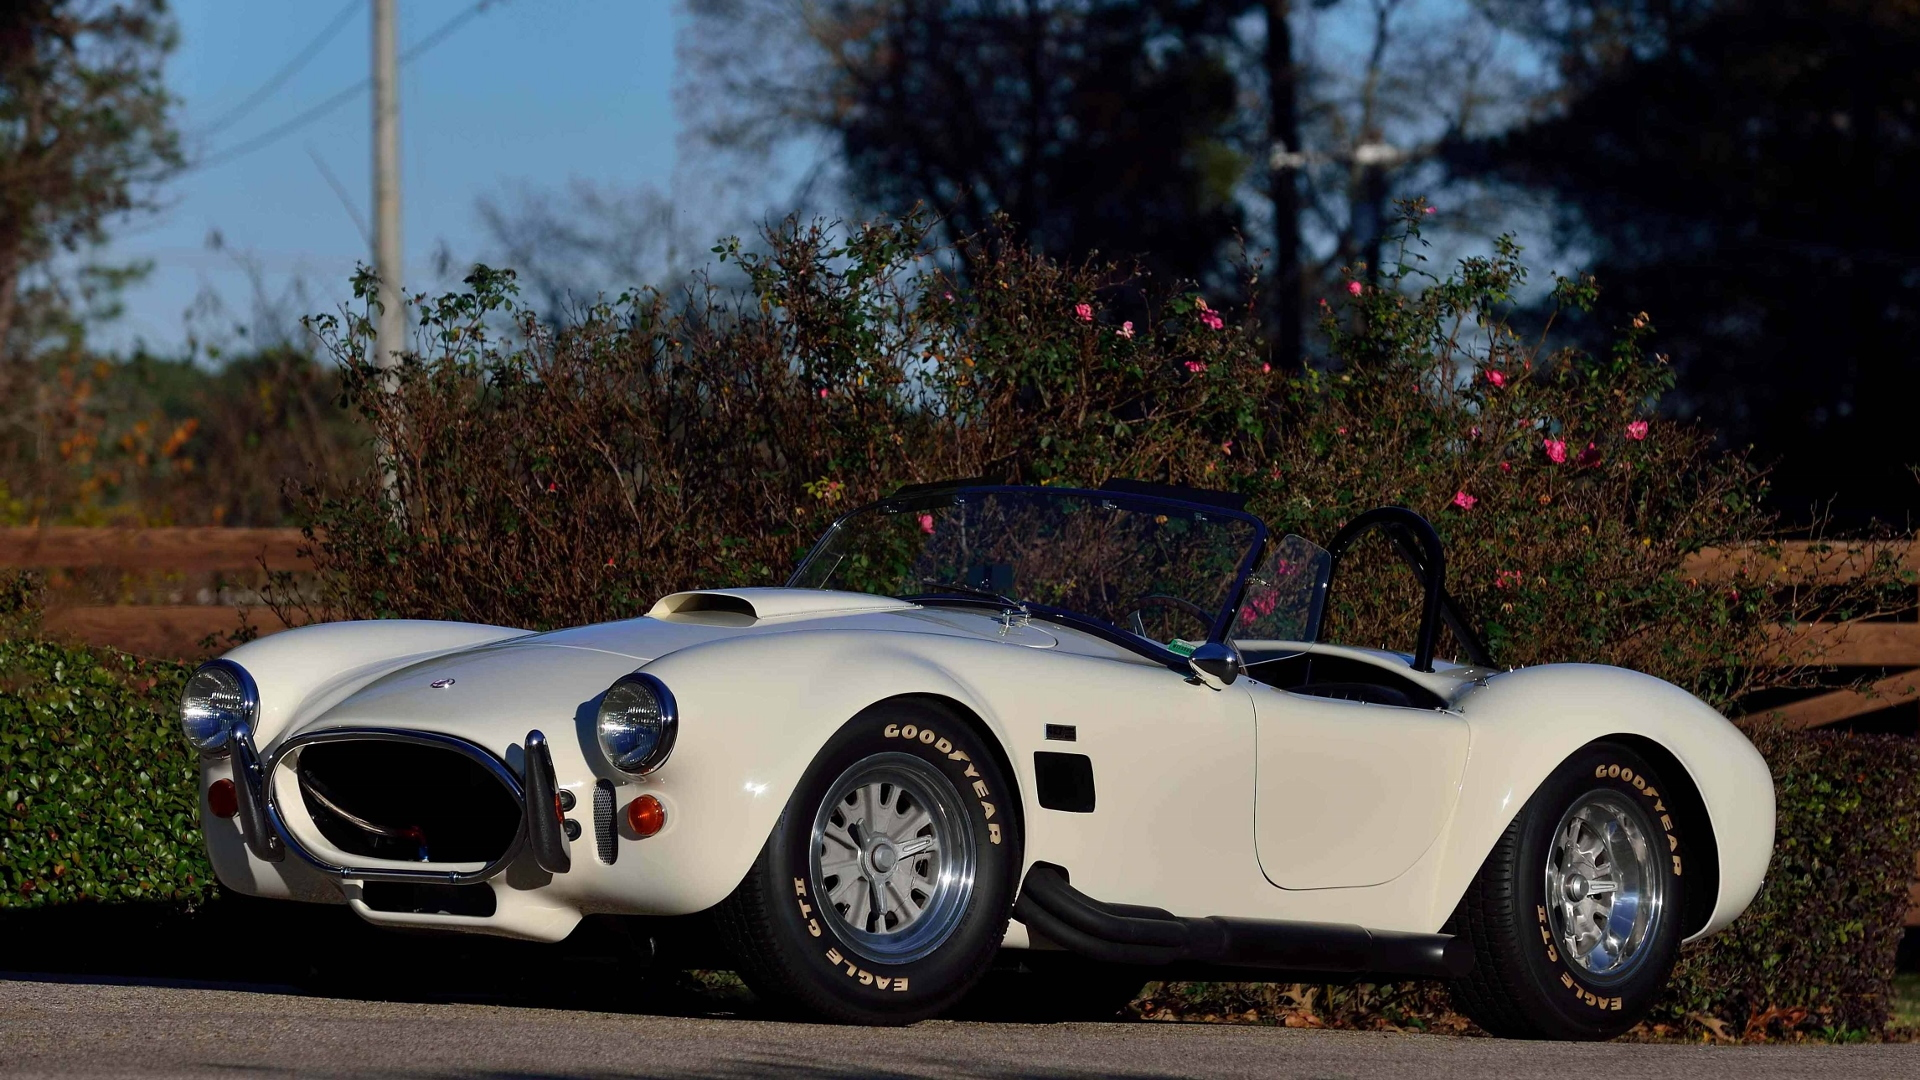 Jim McMurrey collection, 1967 Shelby Cobra 427 roadster